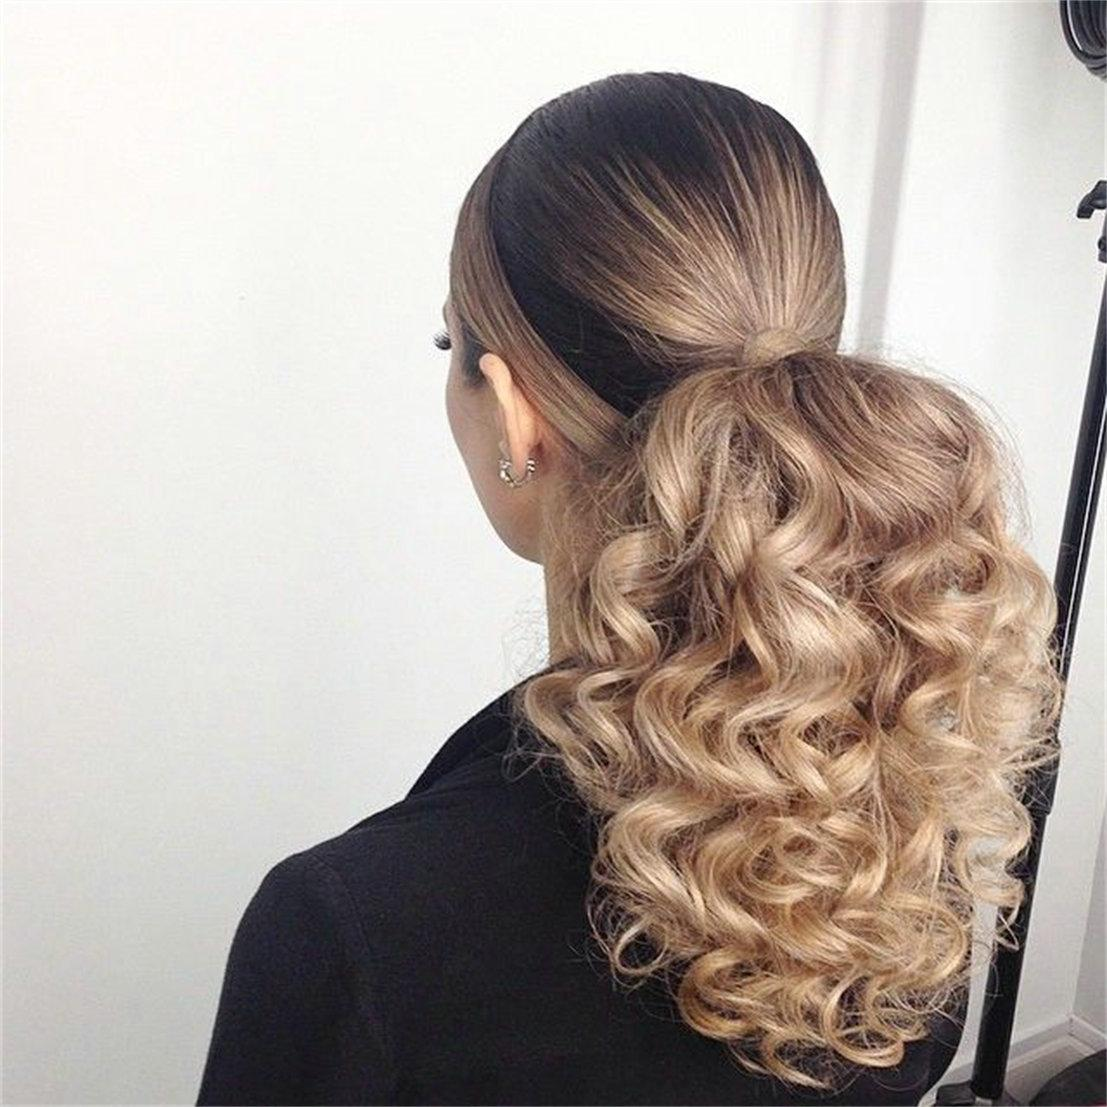 Beyonce Ponytail Hairstyle Deep Curly Draw String Extens Raw Virgin Wraps  Pony Tail Hair Piece 613 Ponytail 100g120g140g Hairstyles Ponytail  Hairstyles With Ponytails From Divaswigszhouli, $49.39| DHgate.Com